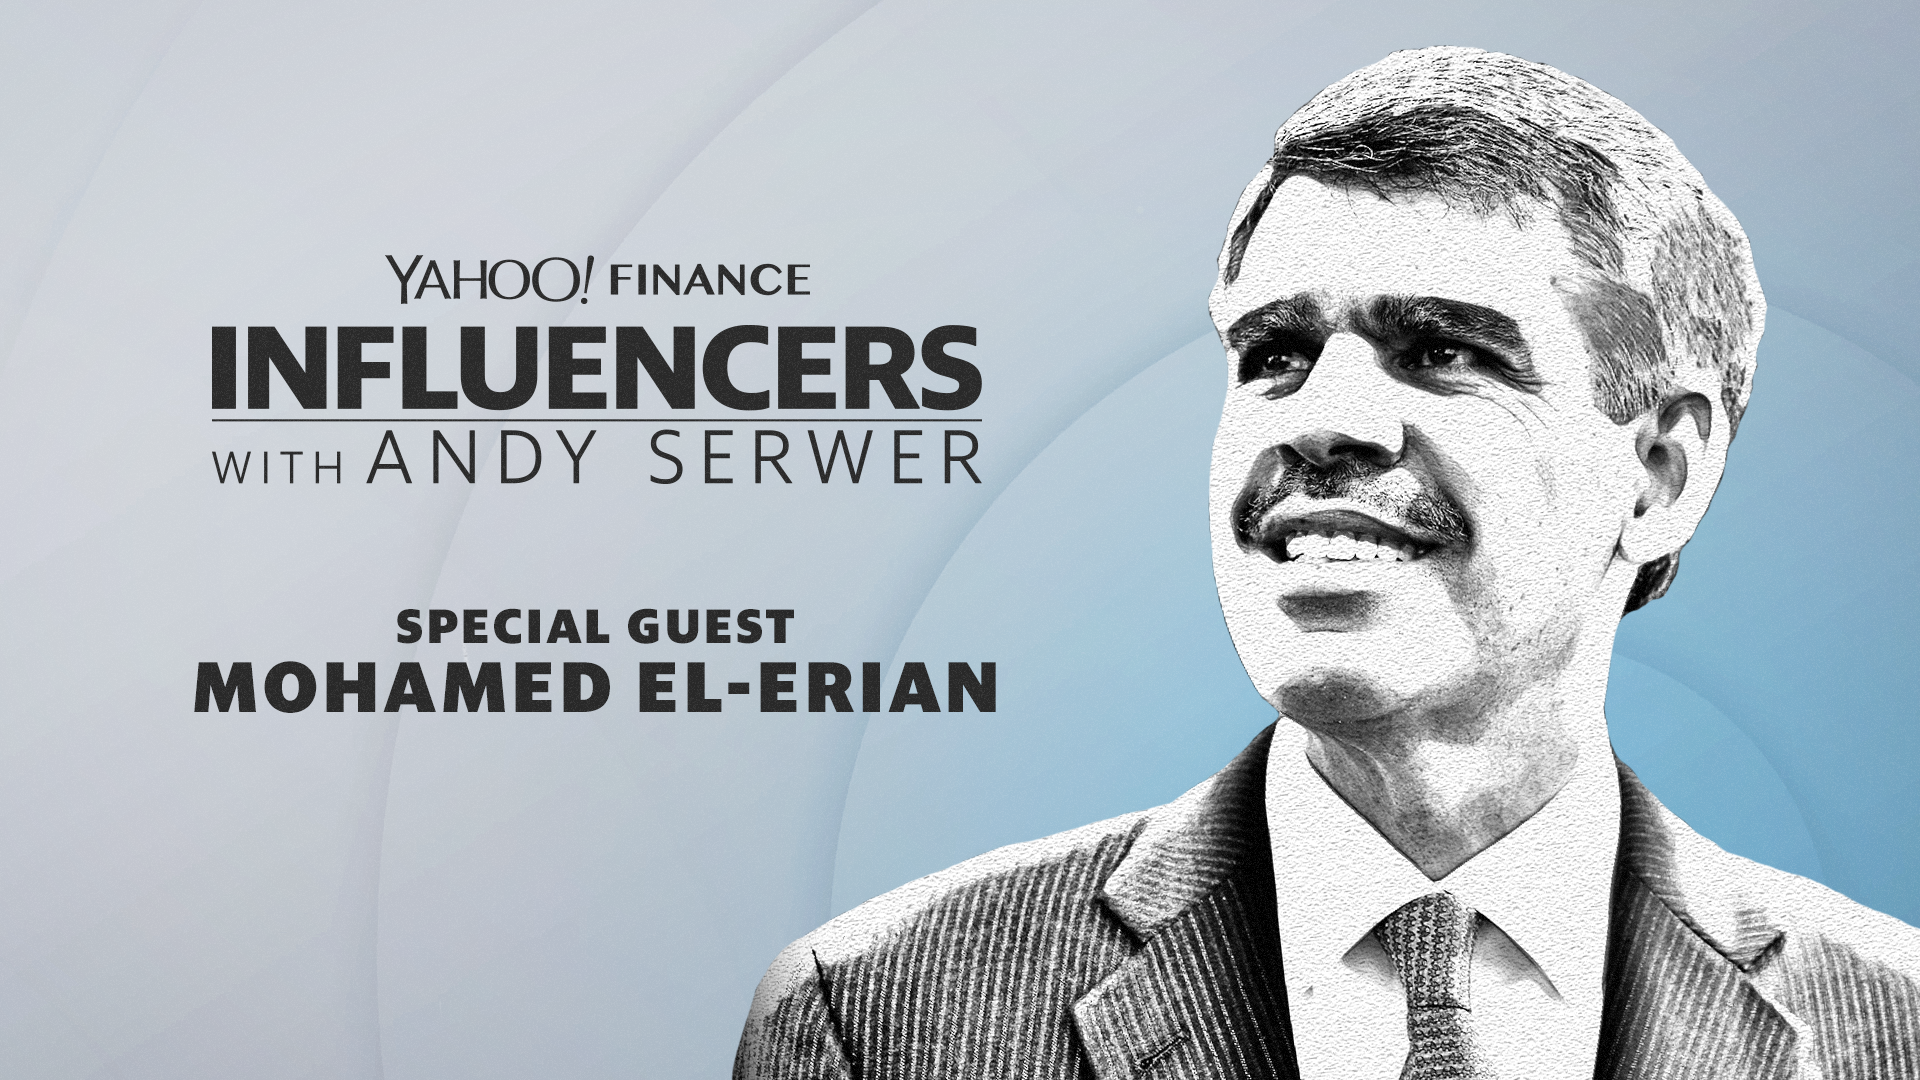 Mohamed El-Erian joins Influencers with Andy Serwer